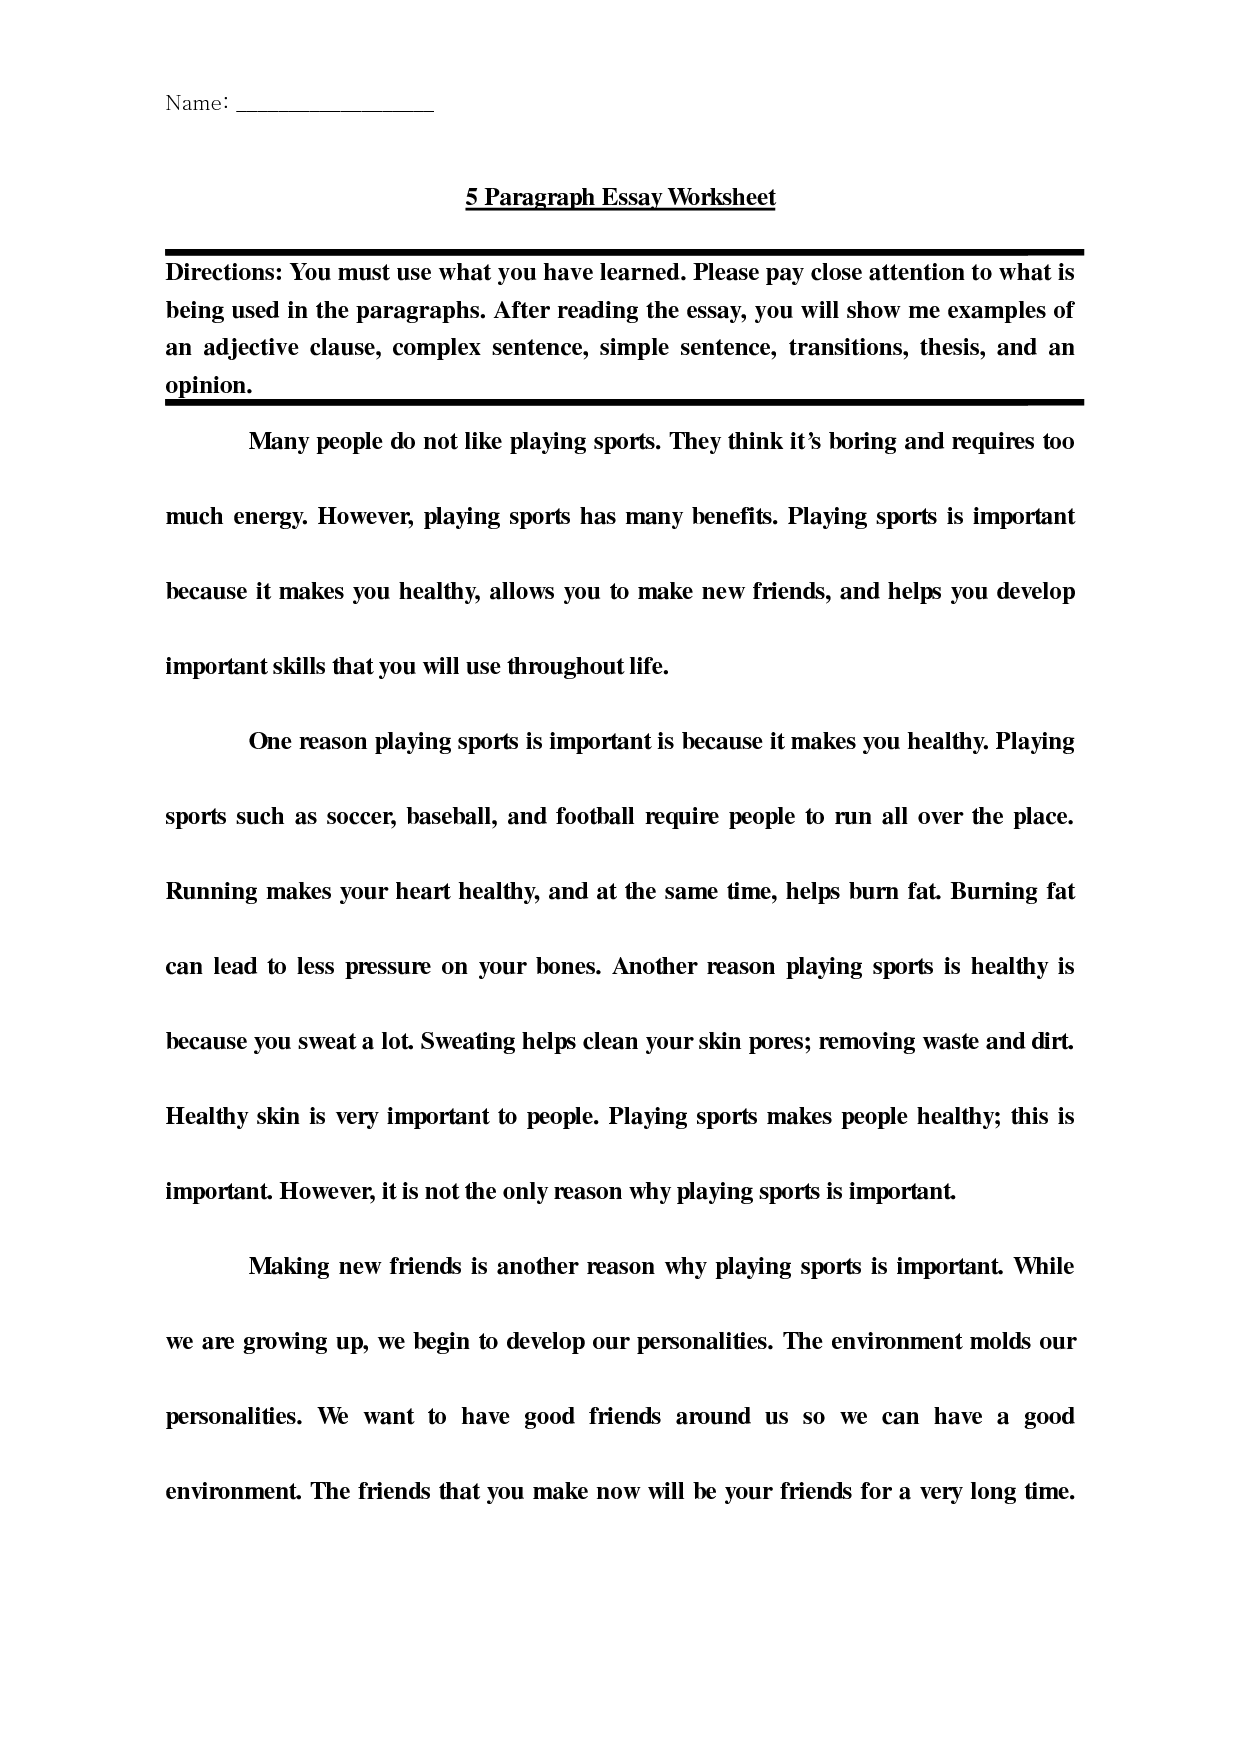 16 Best Images Of Example Paragraph Writing Worksheets